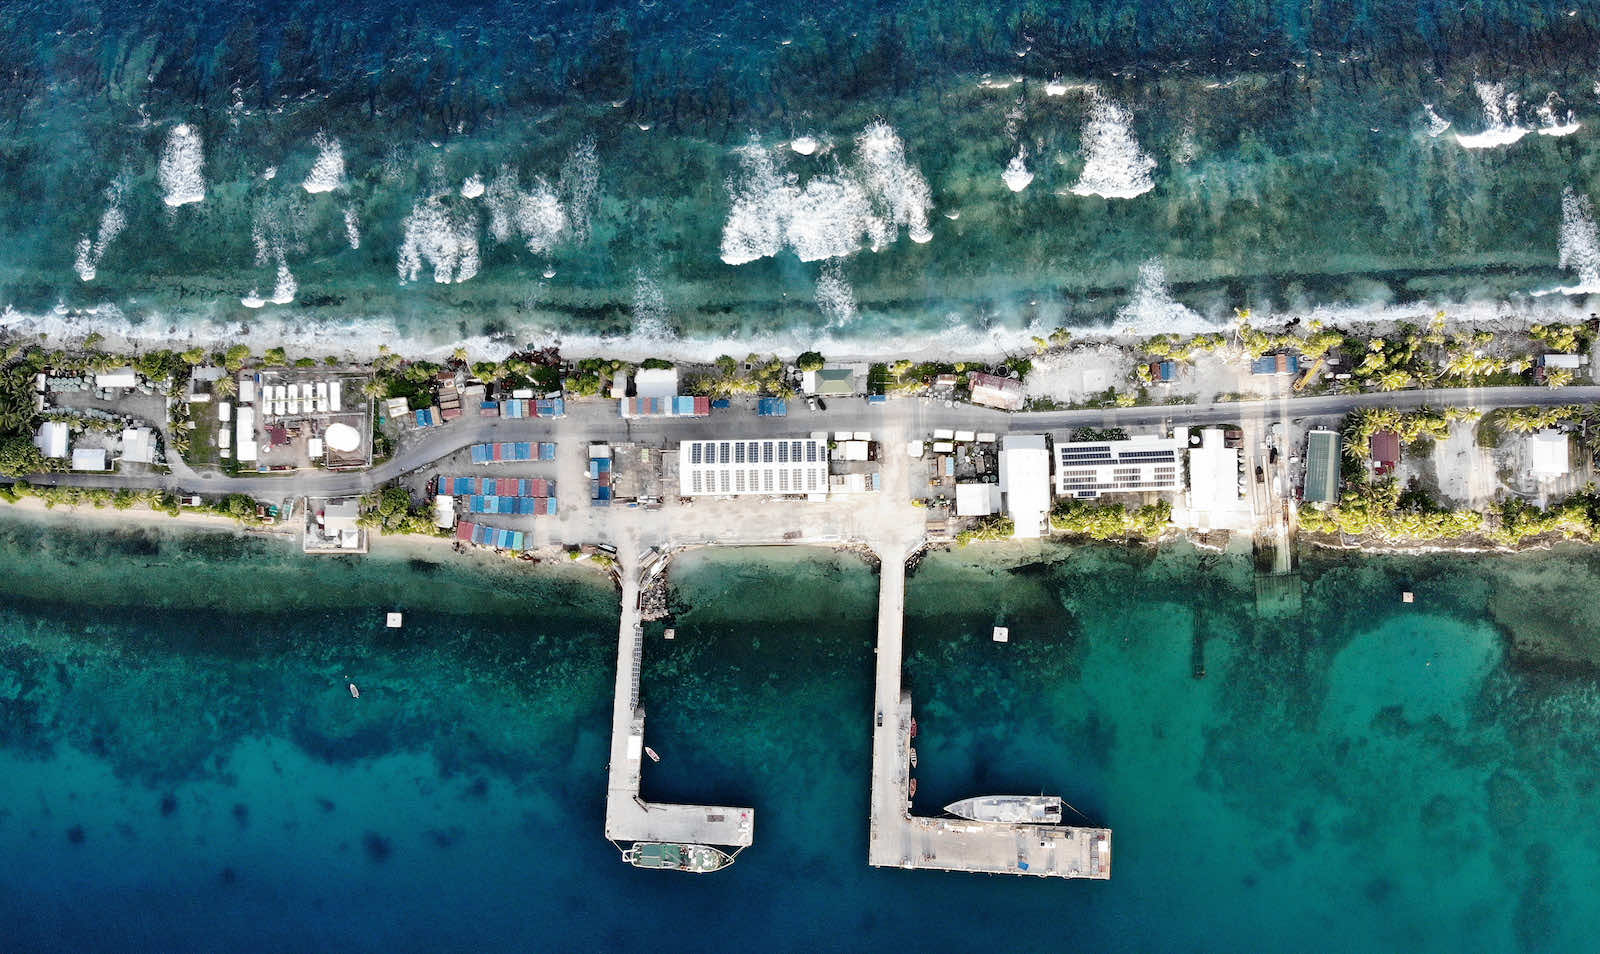 Funafuti, Tuvalu: an aerial view of the port between the Pacific Ocean (top) and lagoon, November 2019 (Mario Tama/Getty Images)